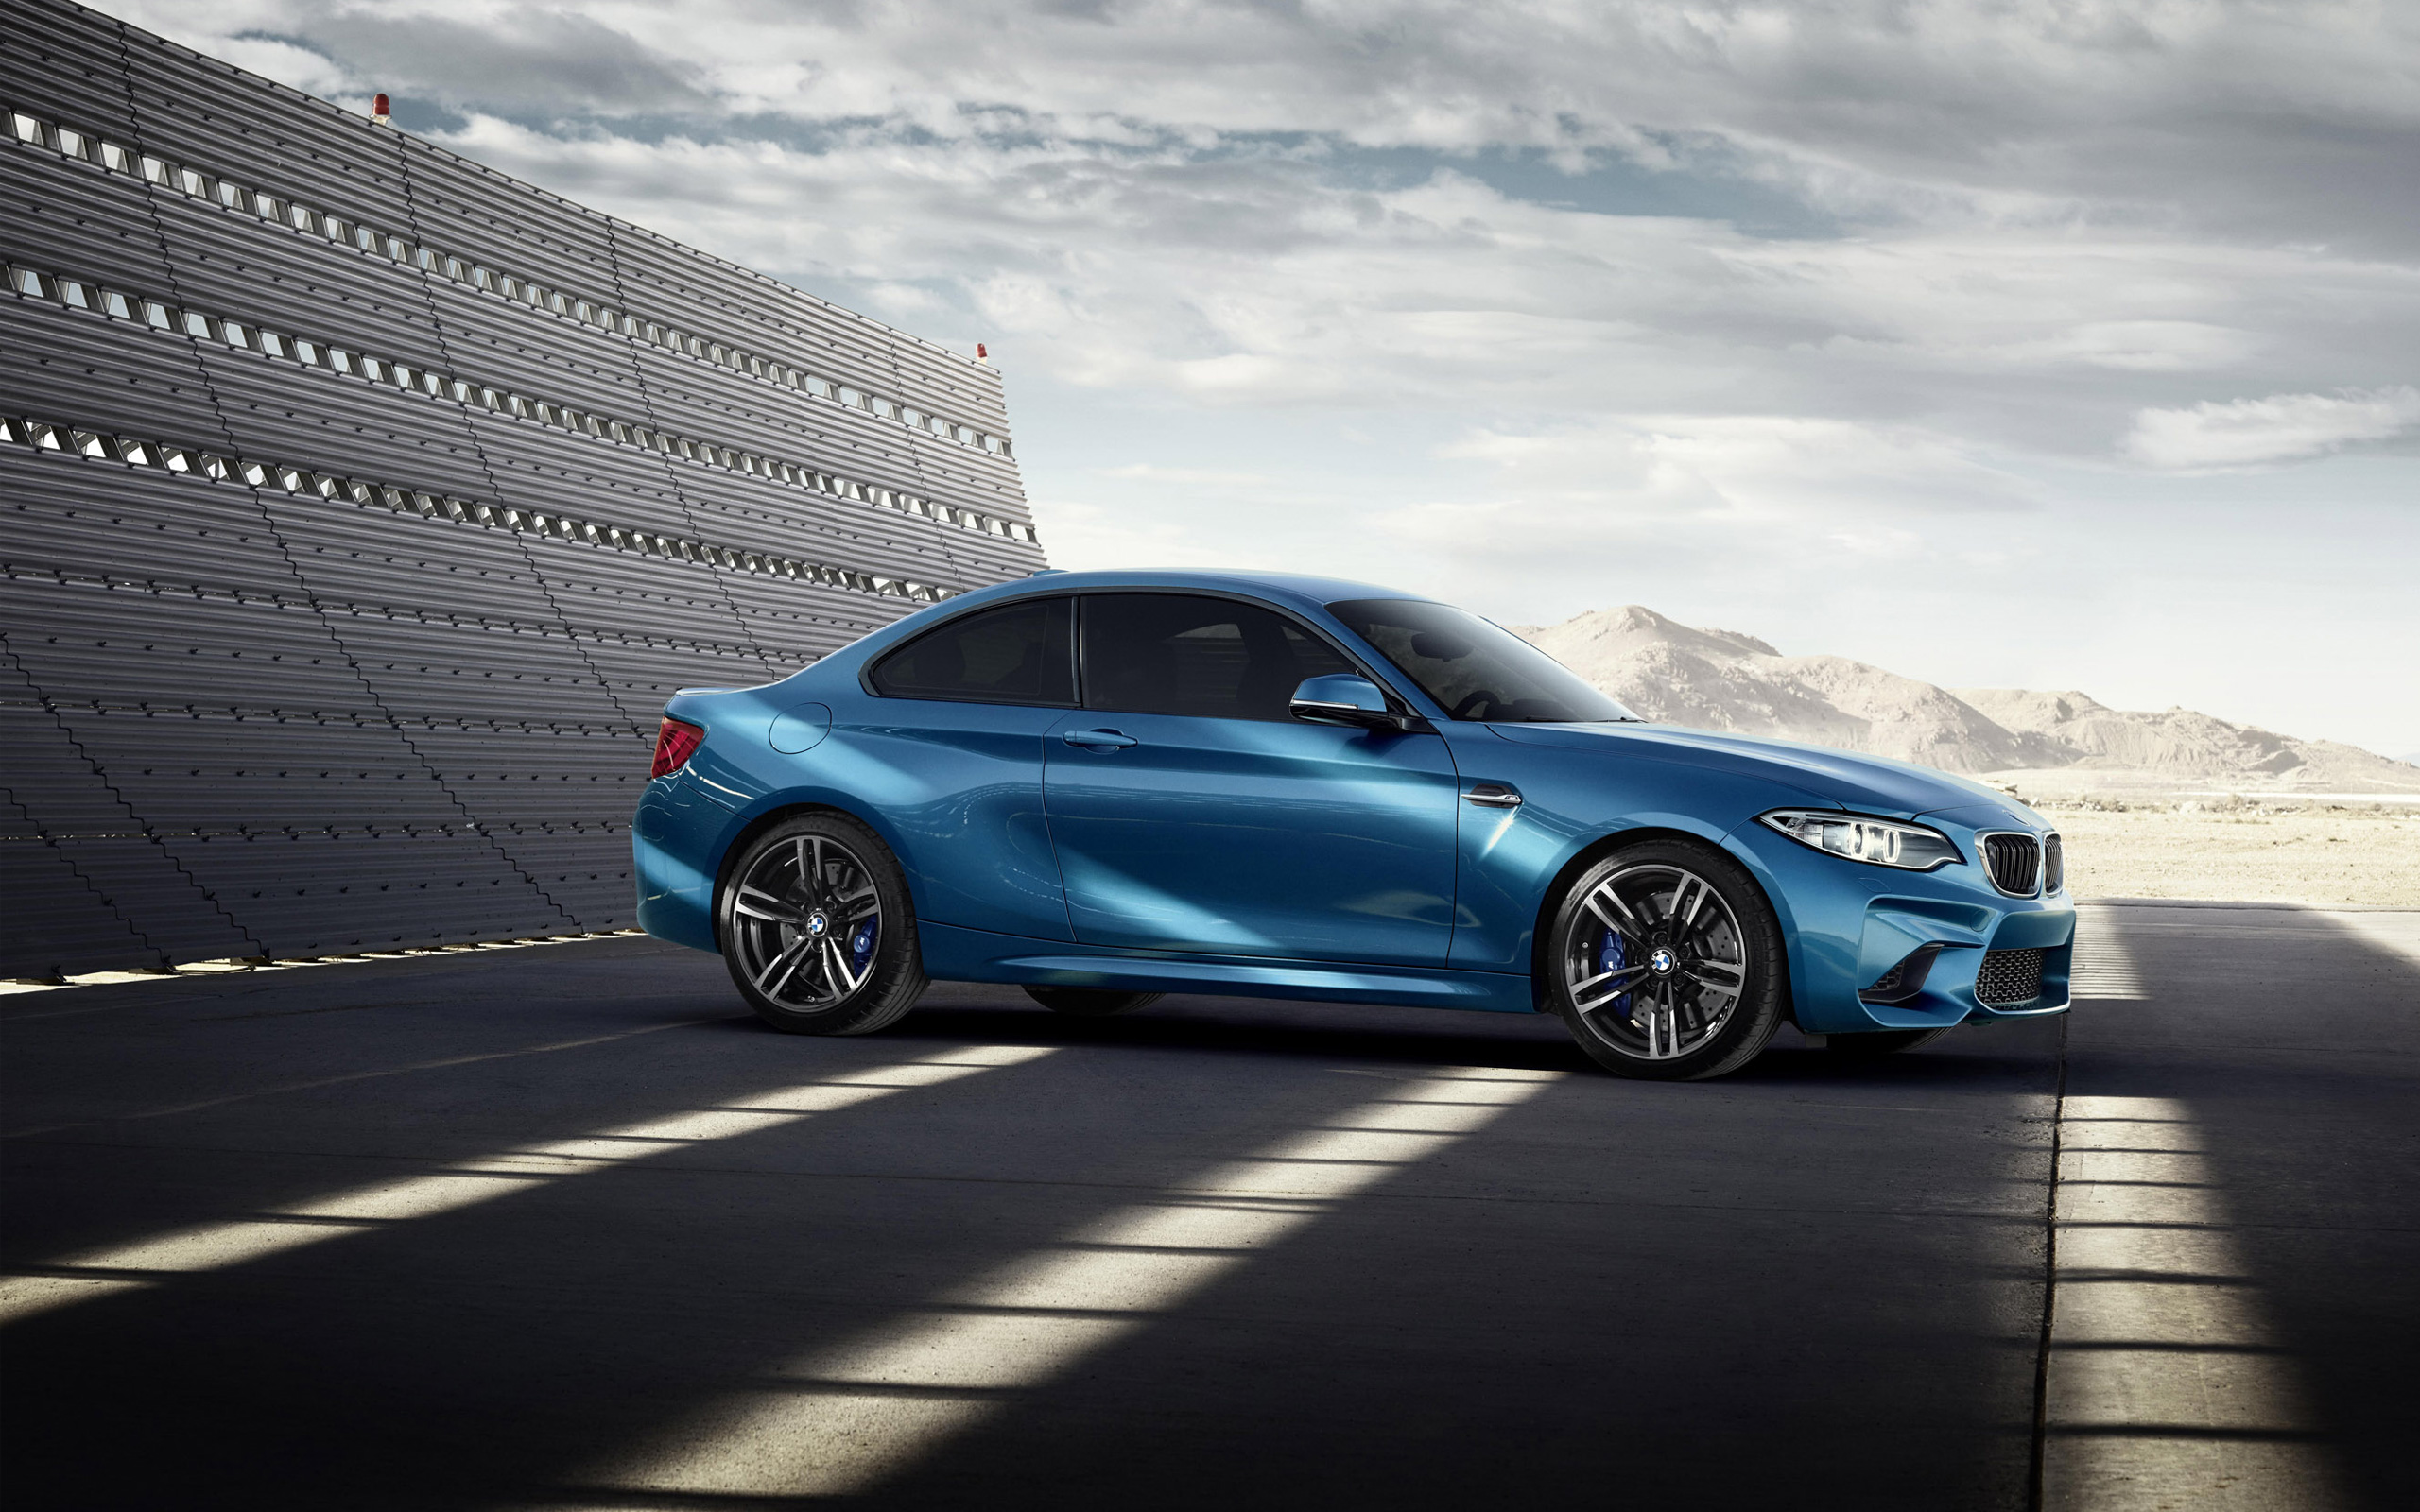 Mercedes Car Wallpapers For Windows 7 2016 Bmw M2 Wallpaper Hd Car Wallpapers Id 6449